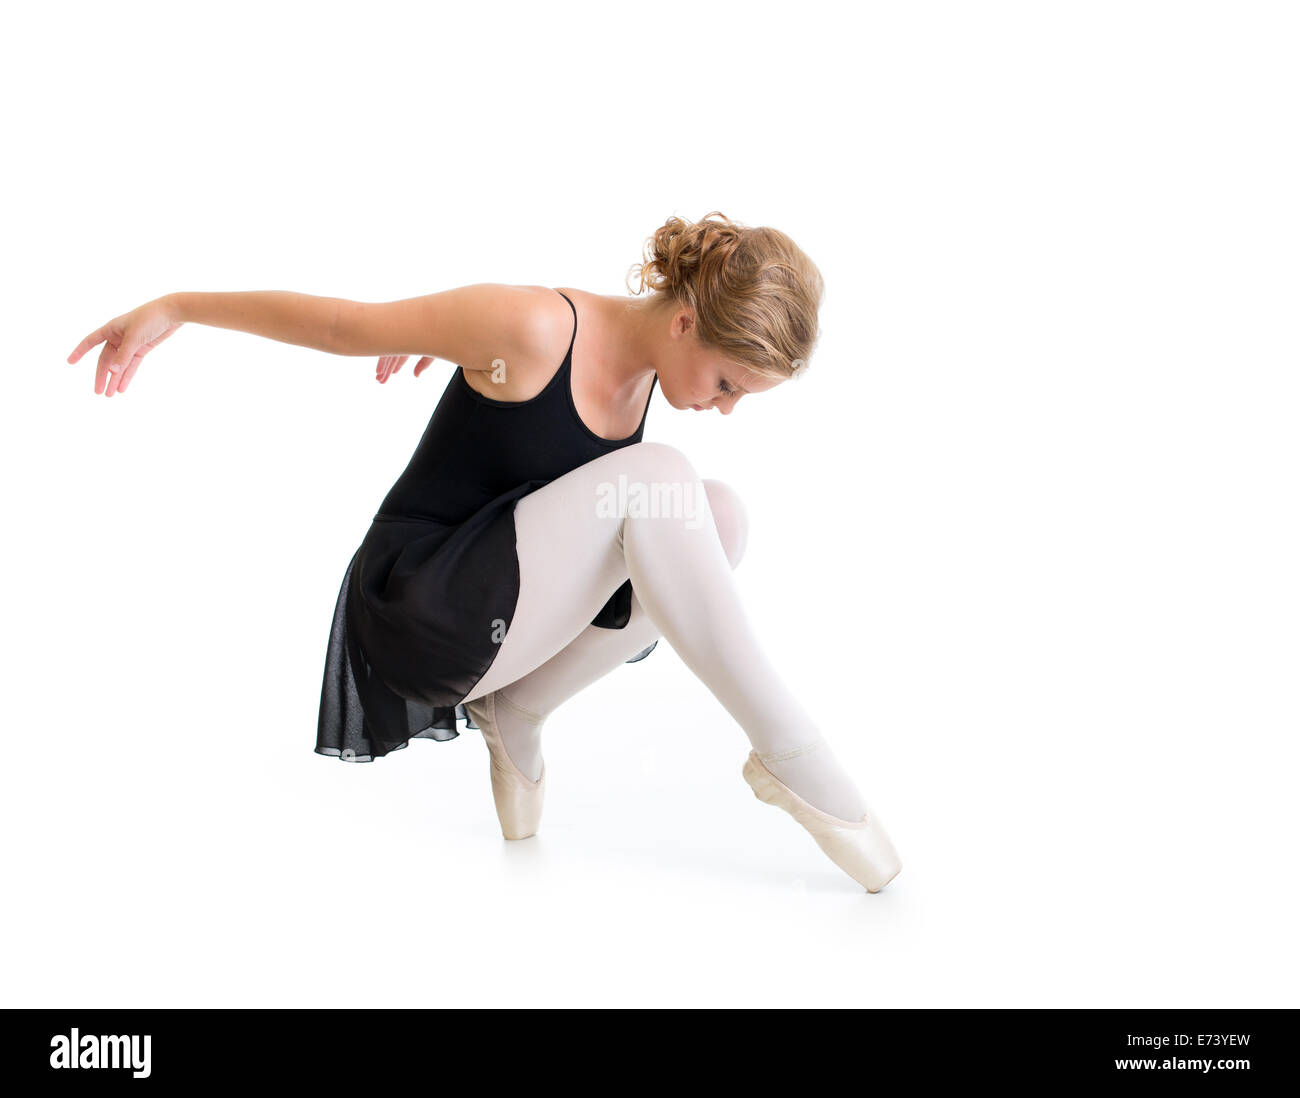 young dancer posing isolated on white - Stock Image